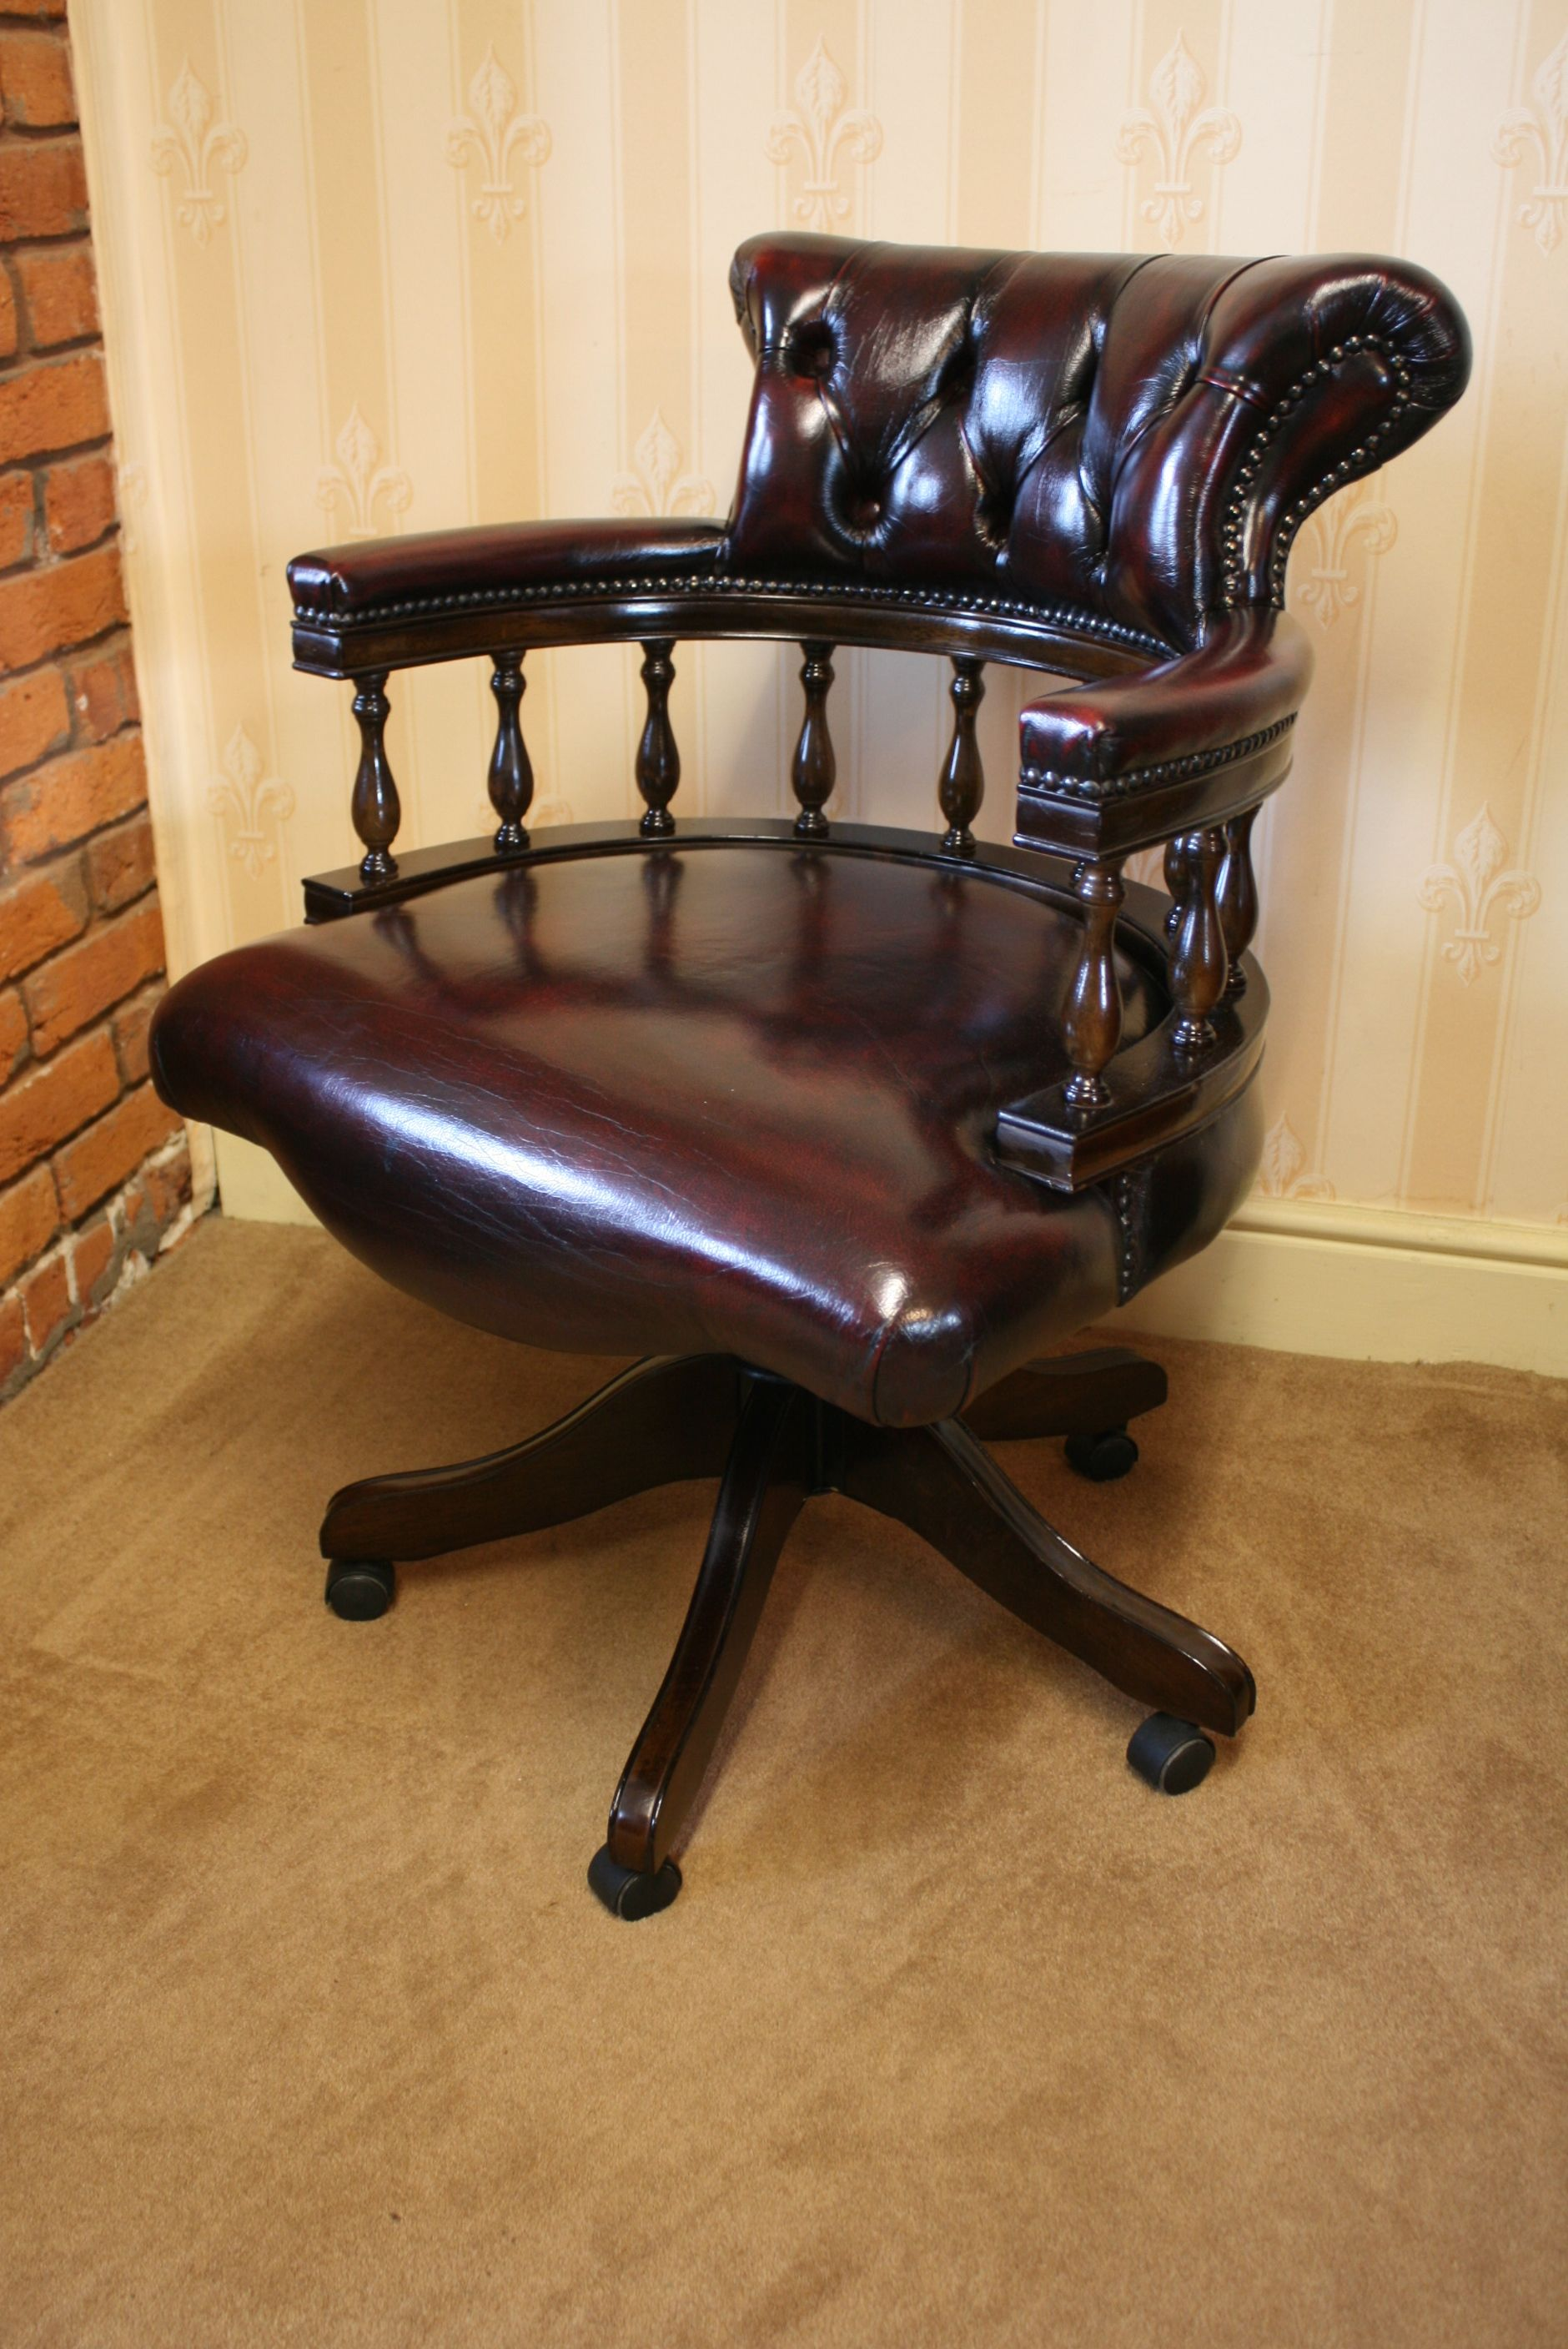 English reproduction furniture furniture designs for English chair design